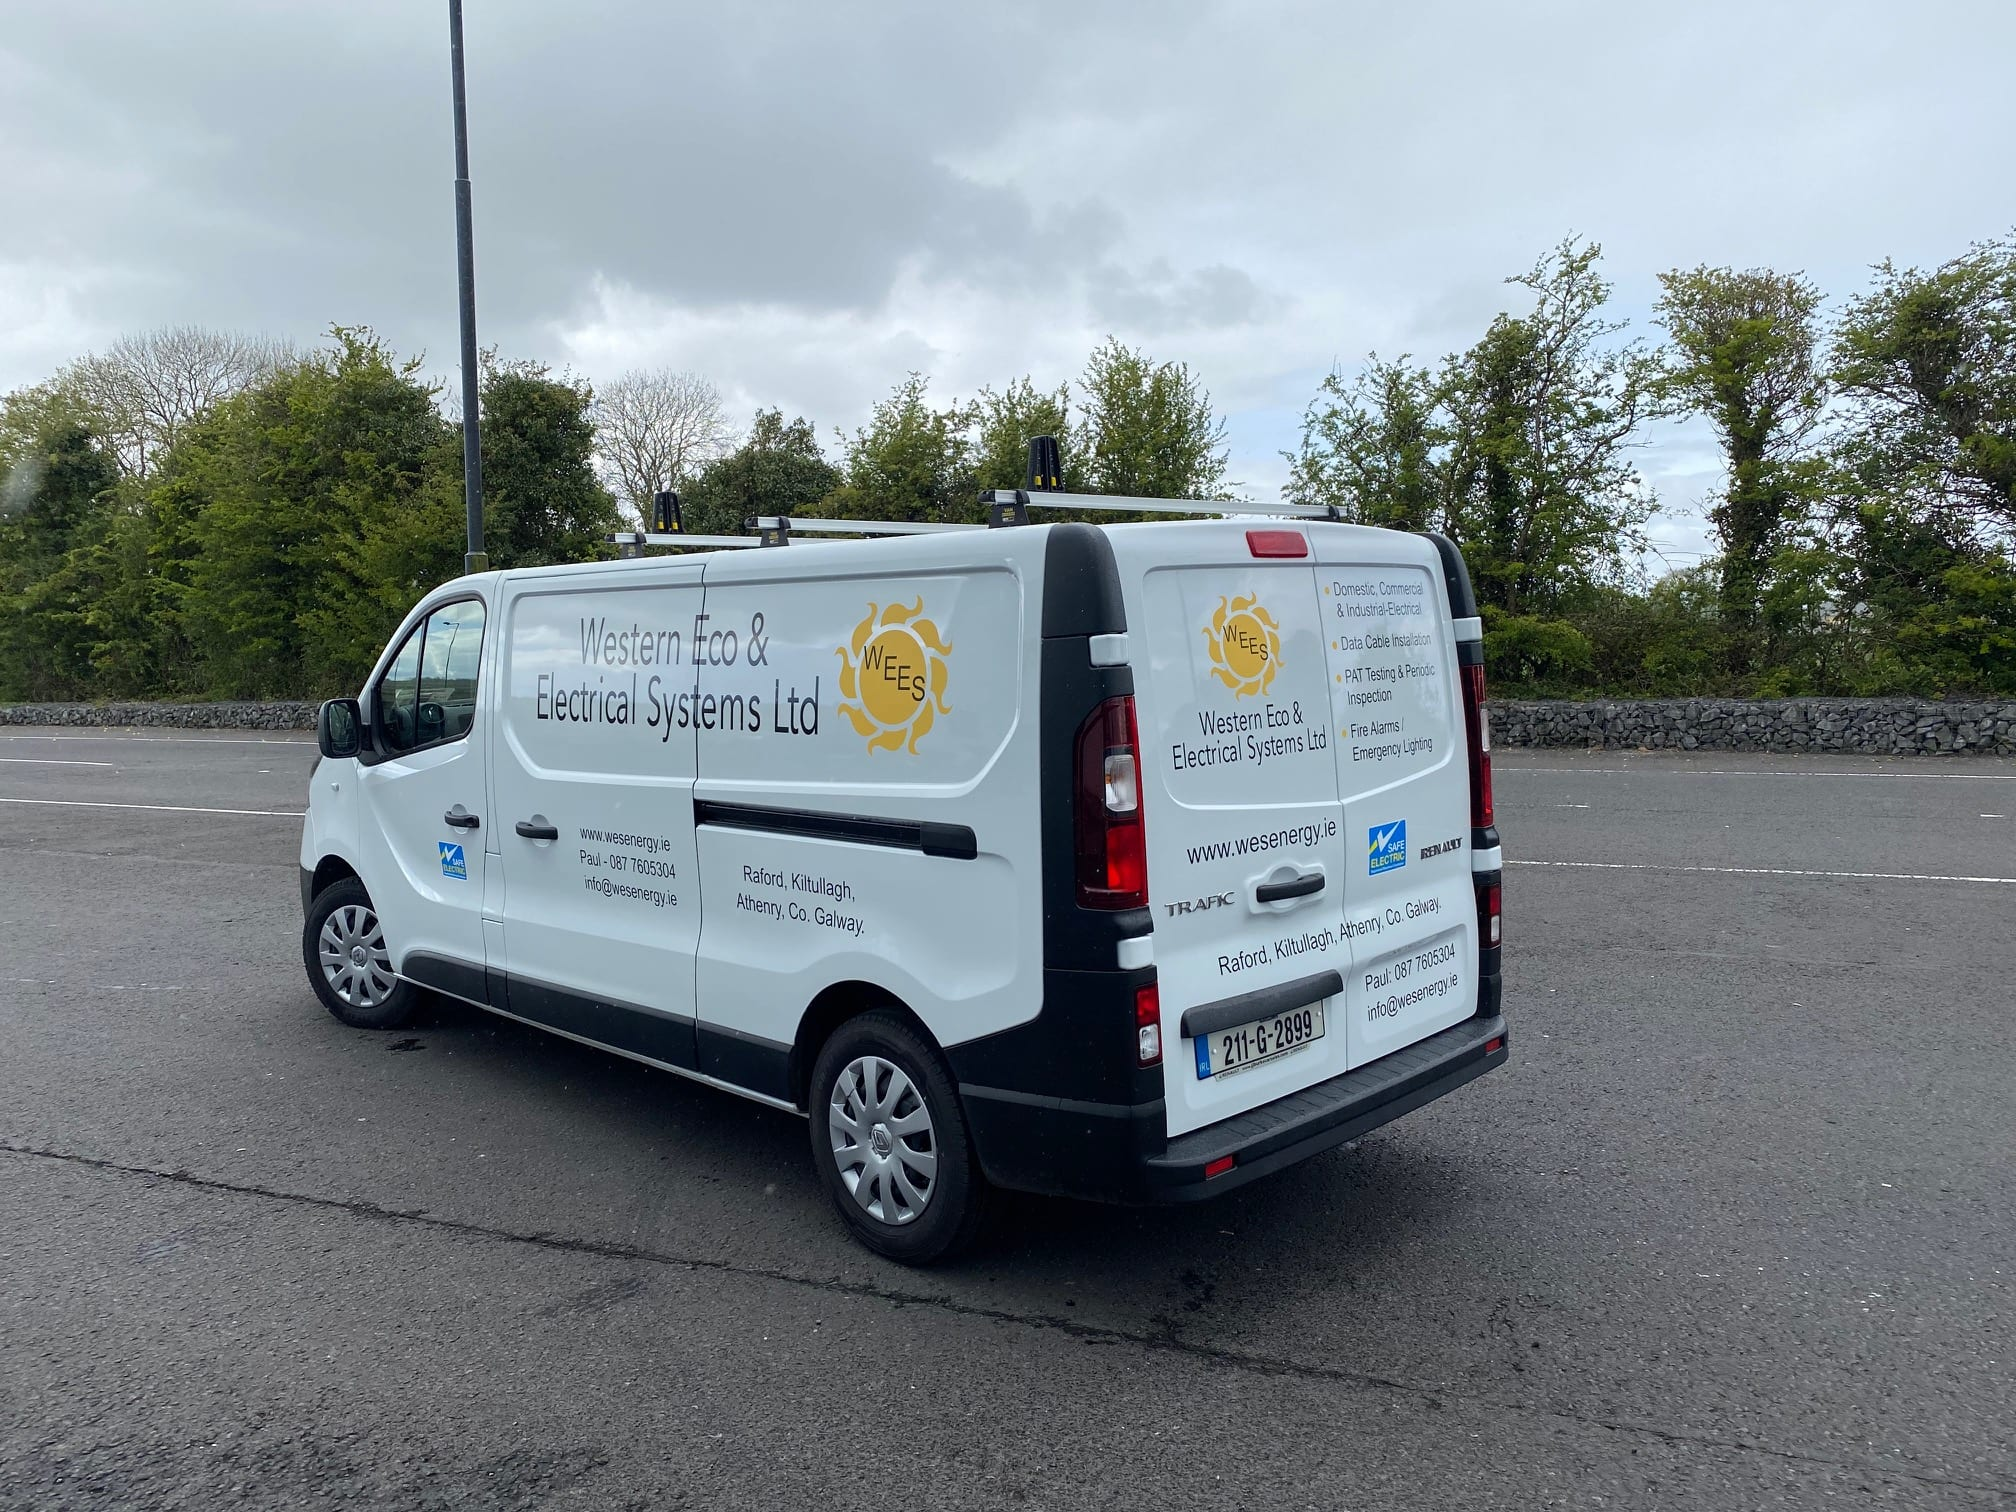 Vehicle Graphics for Western Eco & Electrical Systems LTD